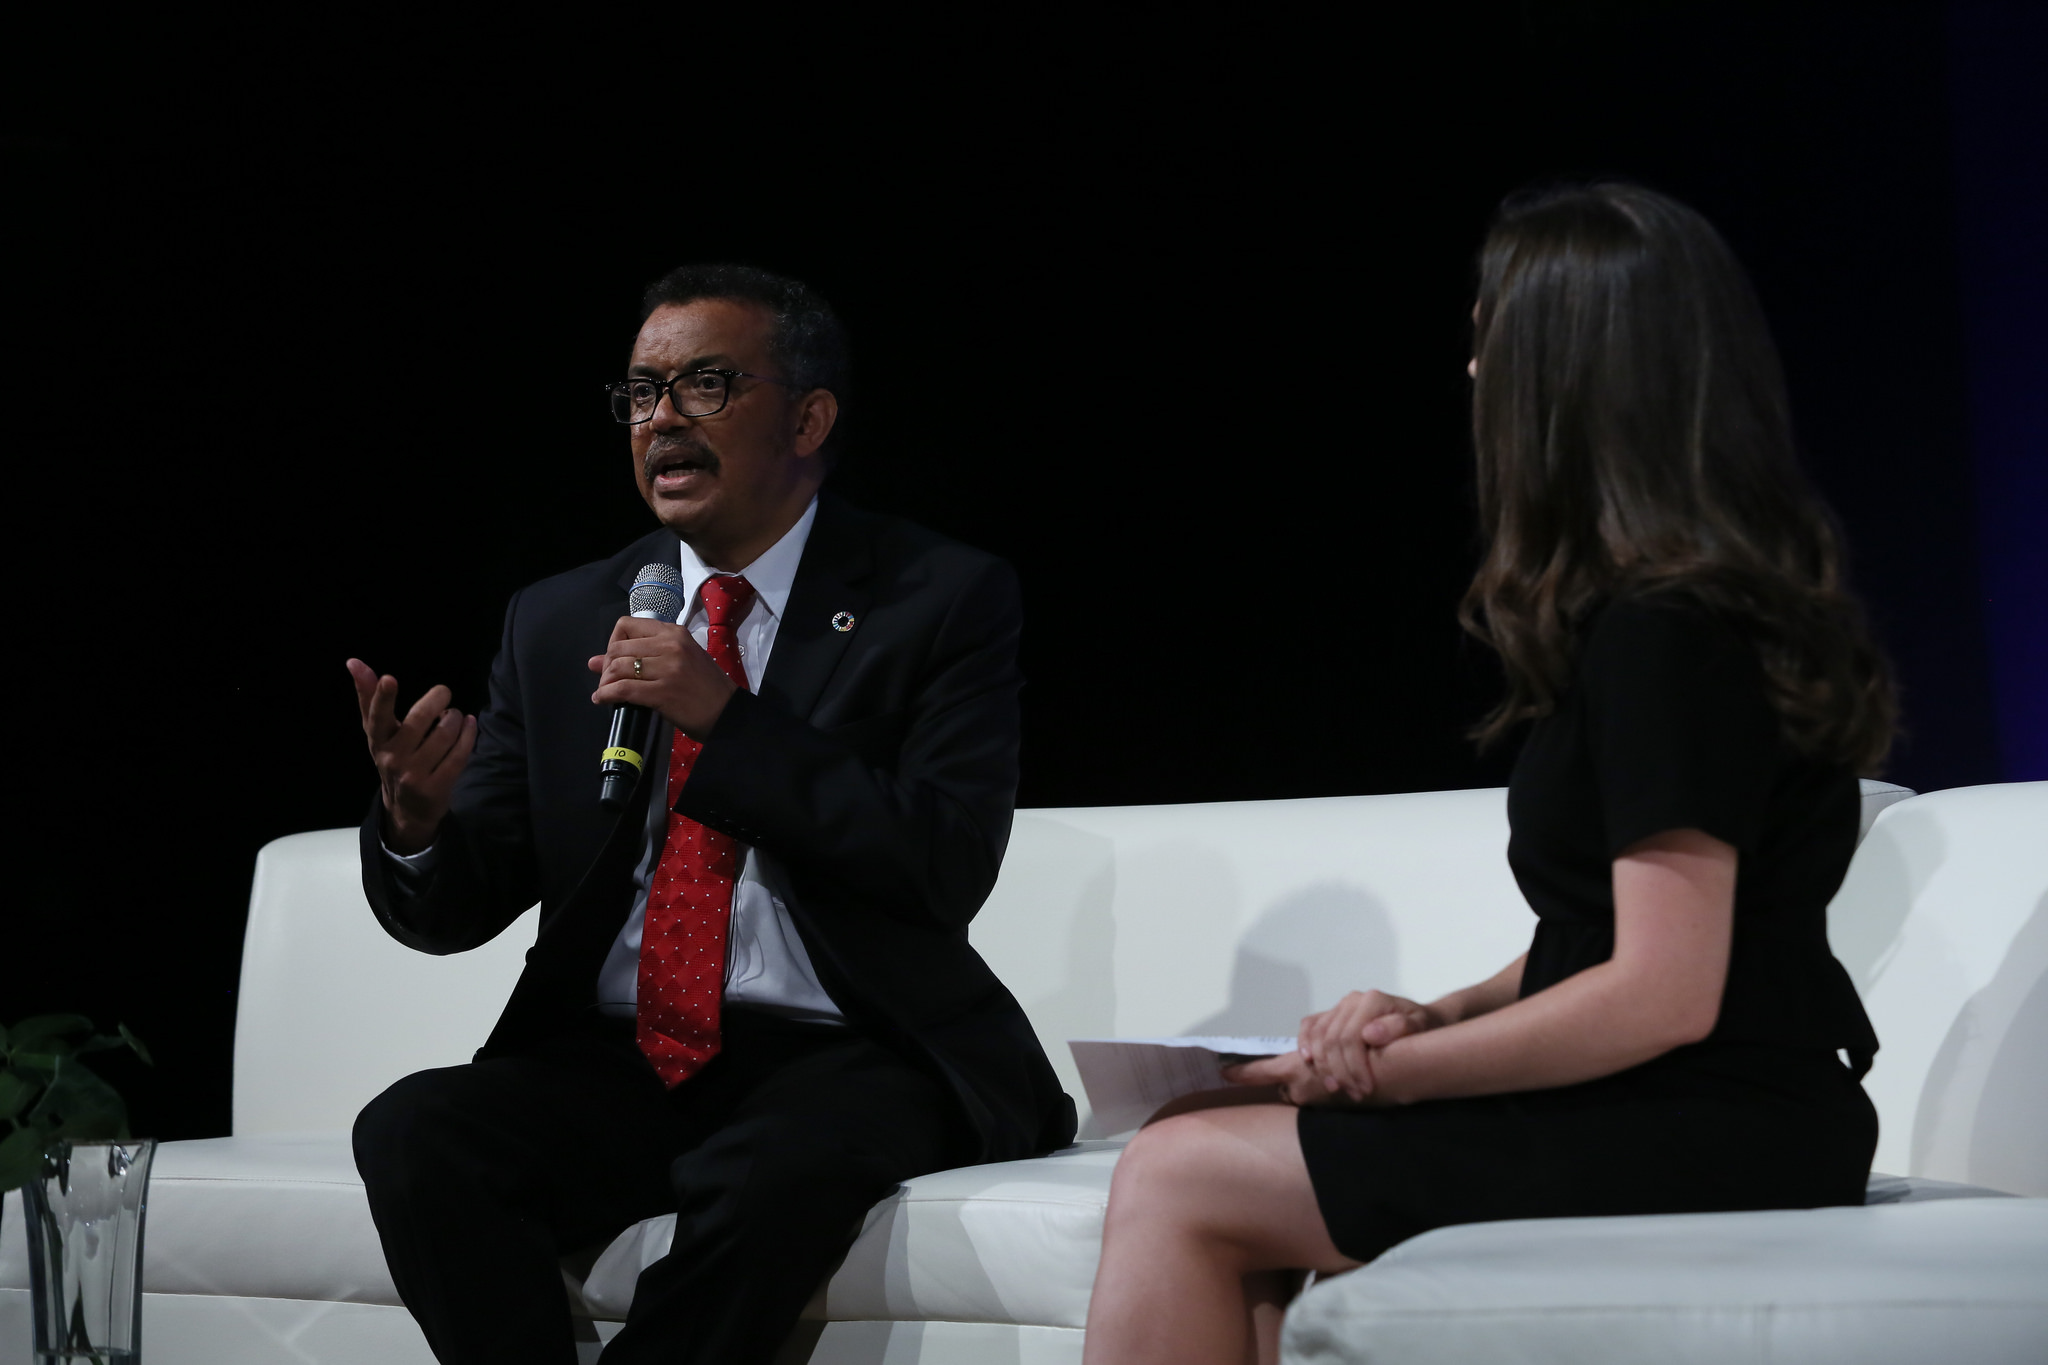 Dr. Tedros Adhanom Ghebreyesus, the director general of the World Health Organization (WHO), discusses universal health coverage at the Social Good Summit in New York City on Sept. 17.